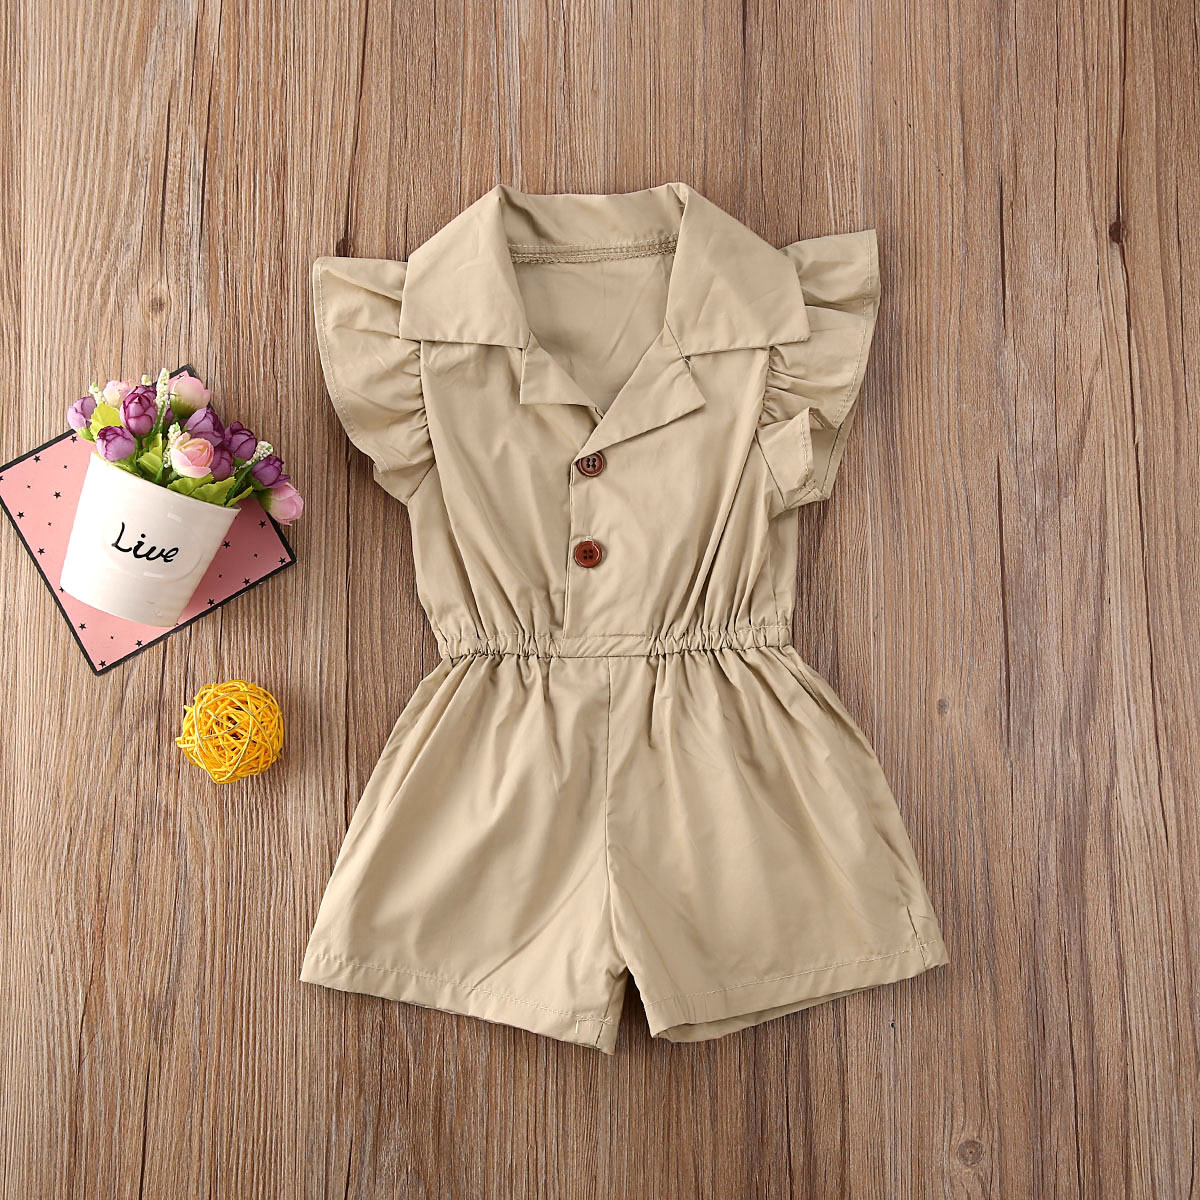 Pudcoco Newborn Baby Girl Clothes Solid Color Sleeveless Ruffle Button Romper Jumpsuit One-Piece Outfit Overalls Clothes